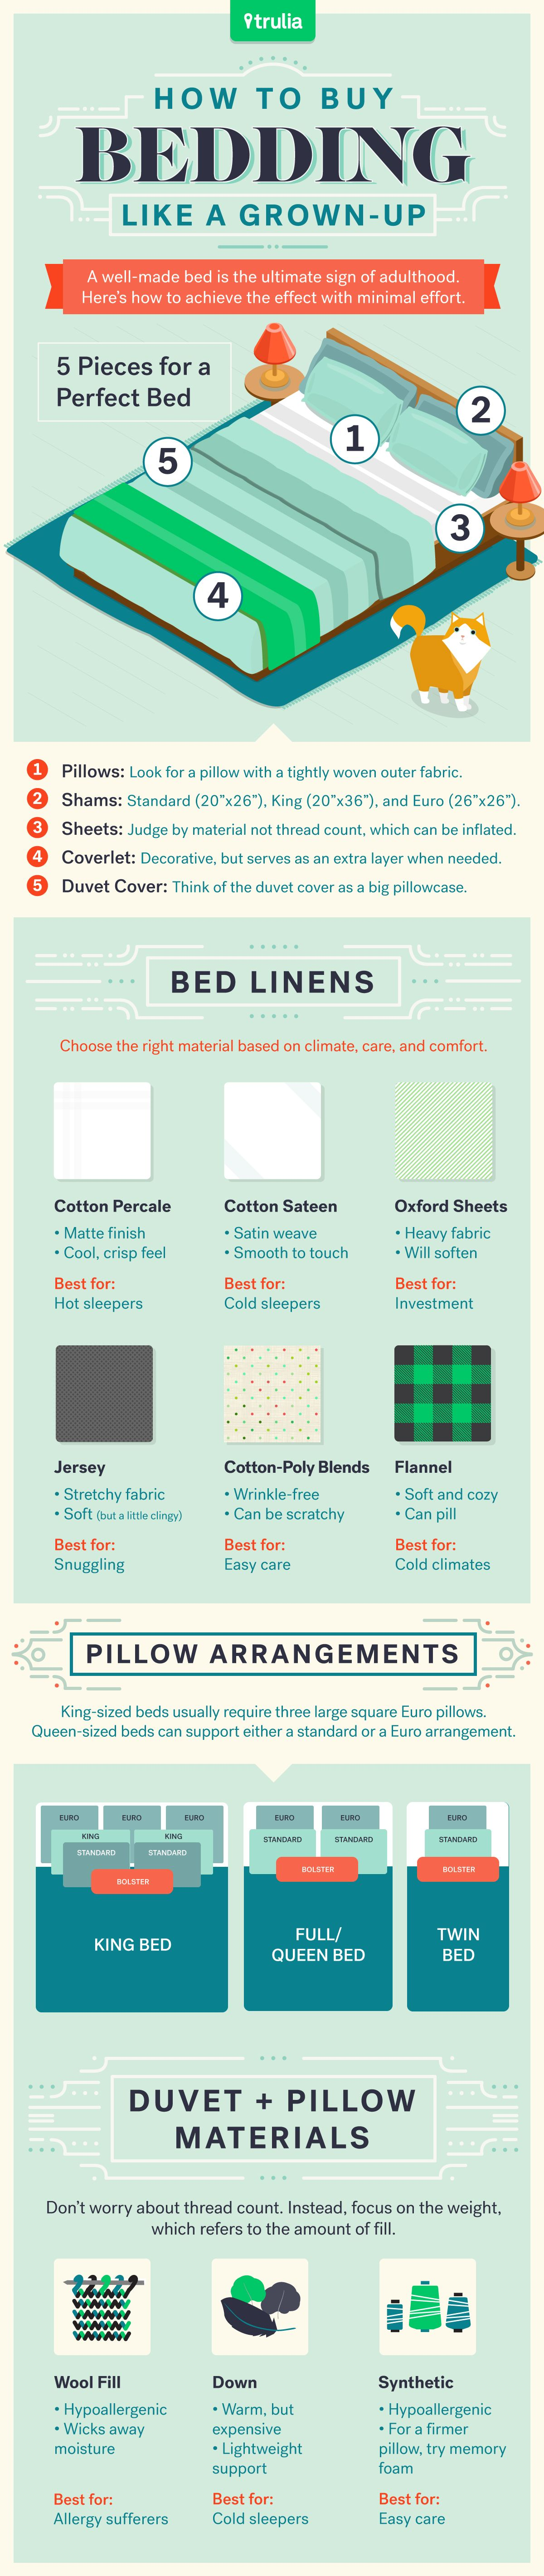 How to buy bed sheets like a grownup life at home trulia blog